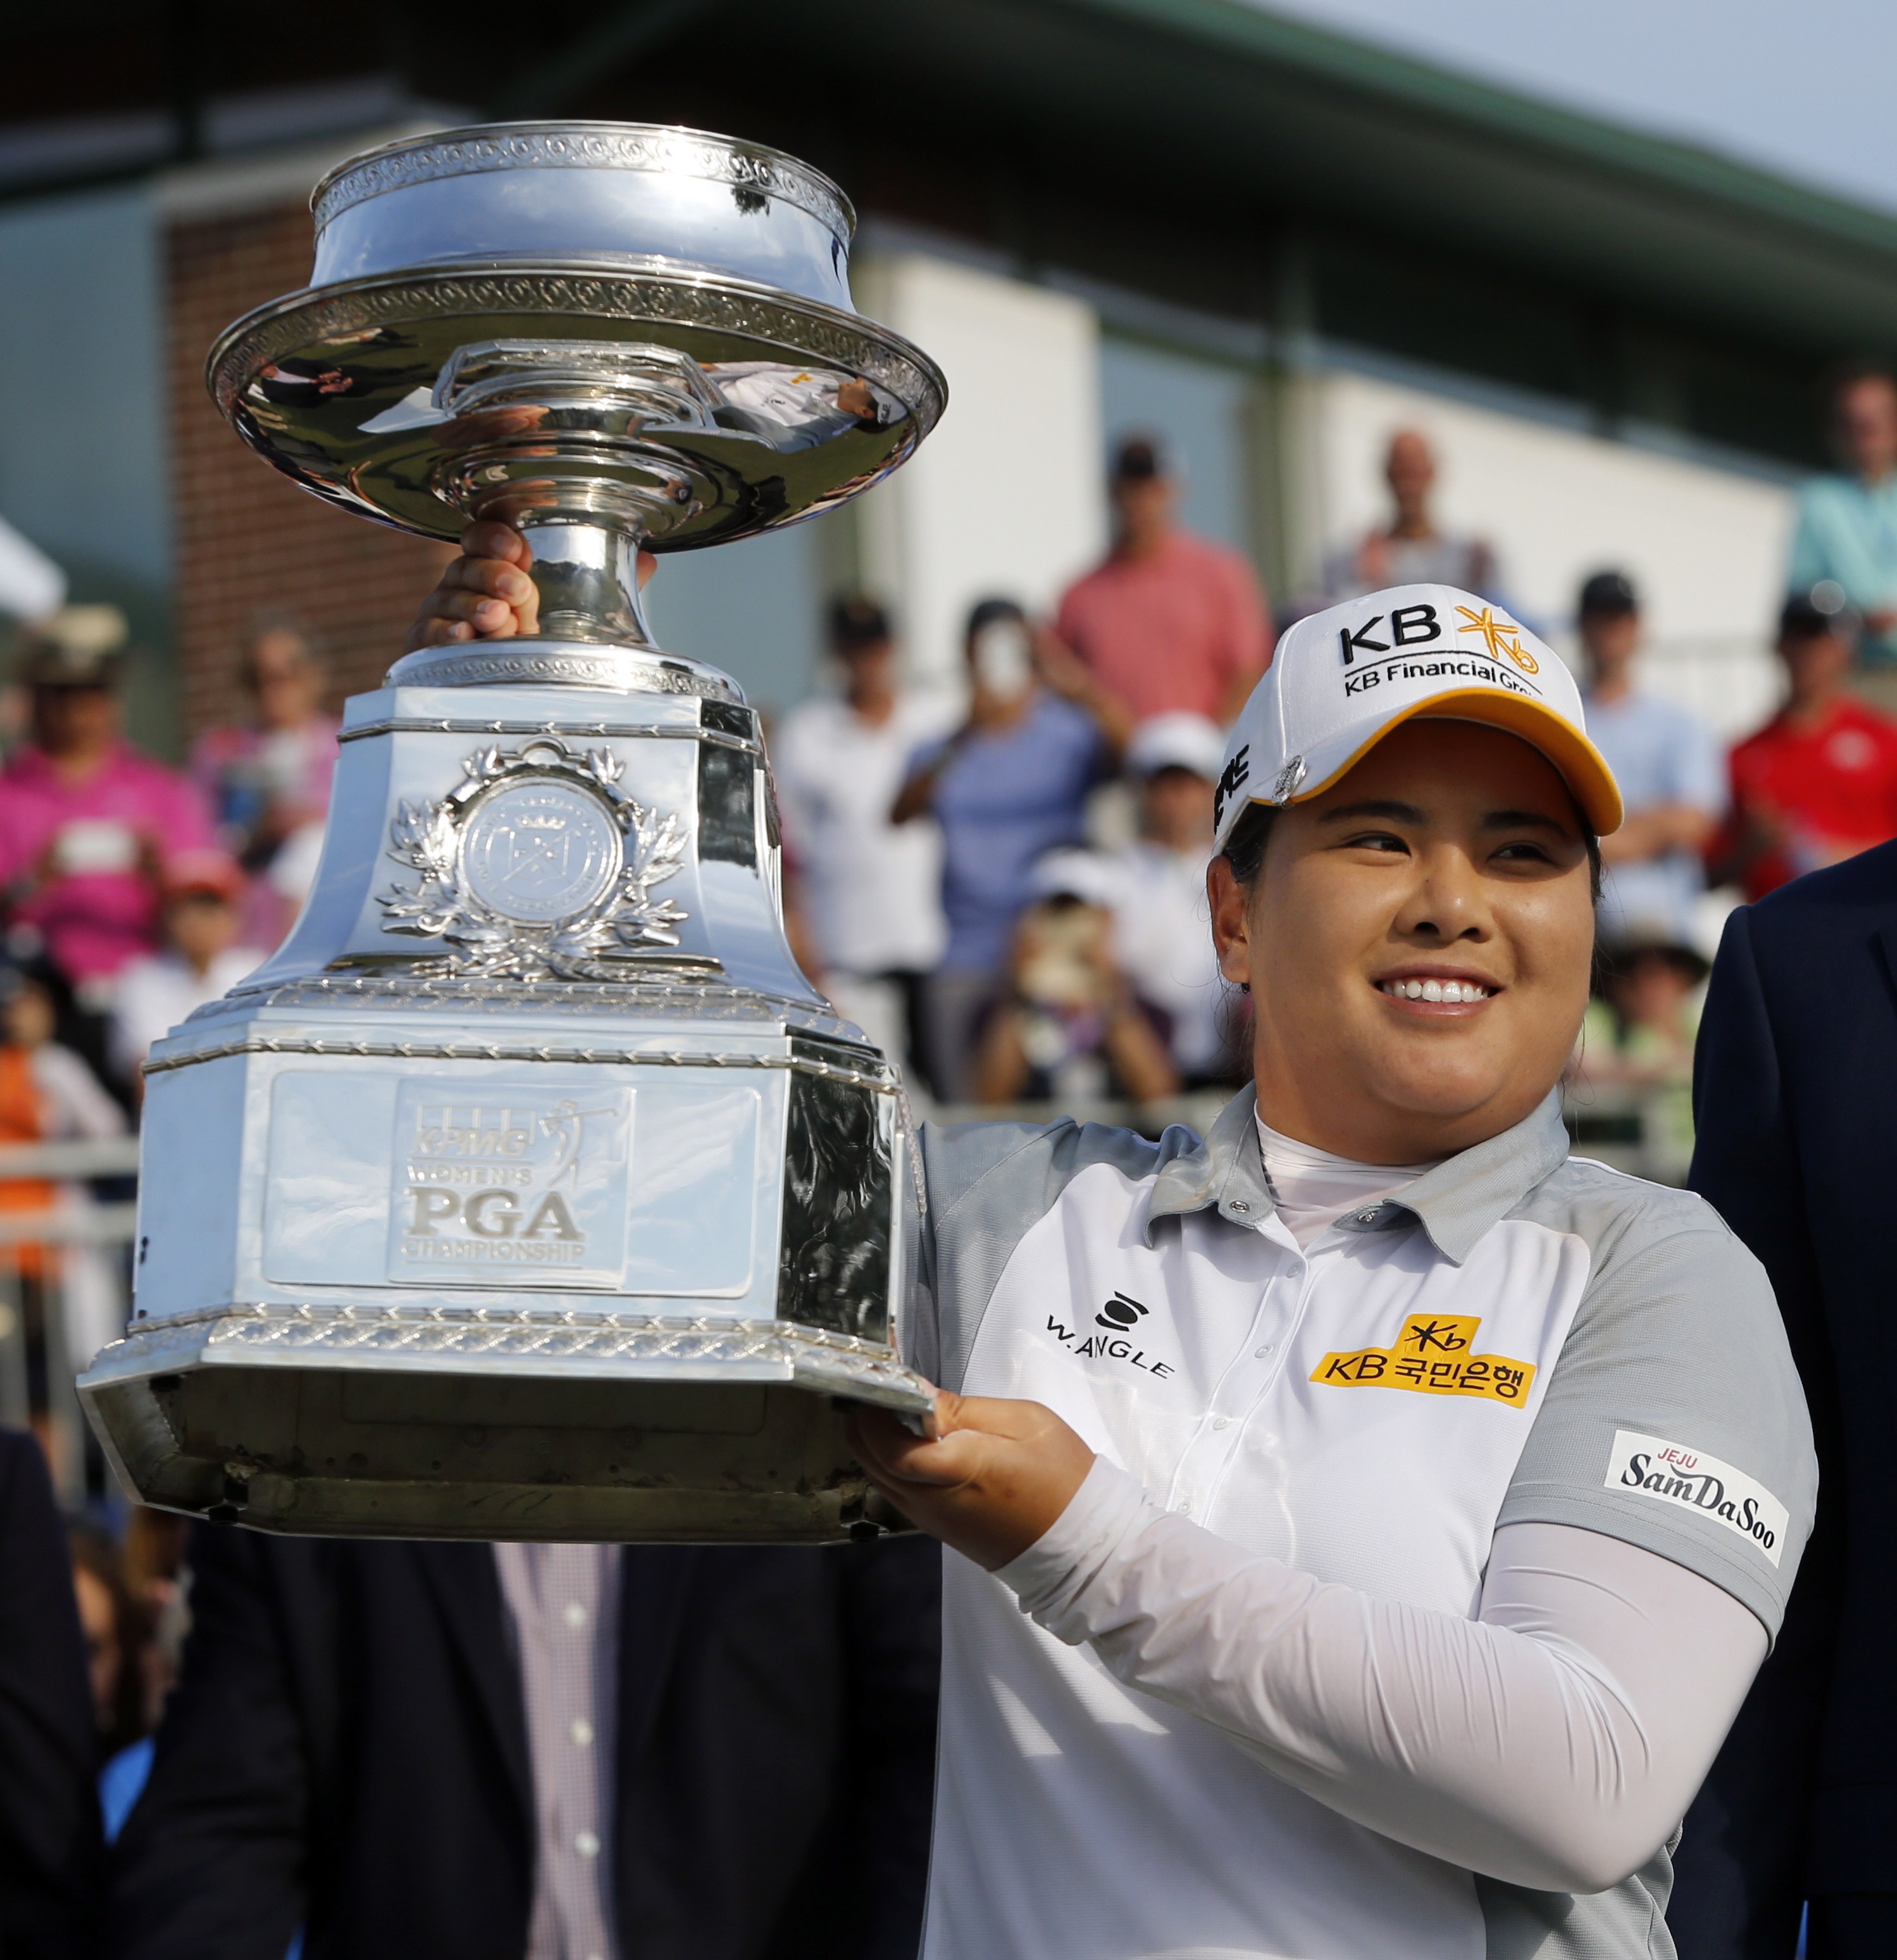 Inbee Park, of South Korea, poses with the trophy after winning the KPMG Women's PGA golf championship at Westchester Country Club in Harrison, N.Y., Sunday, June 14, 2015. (AP Photo/Julio Cortez)